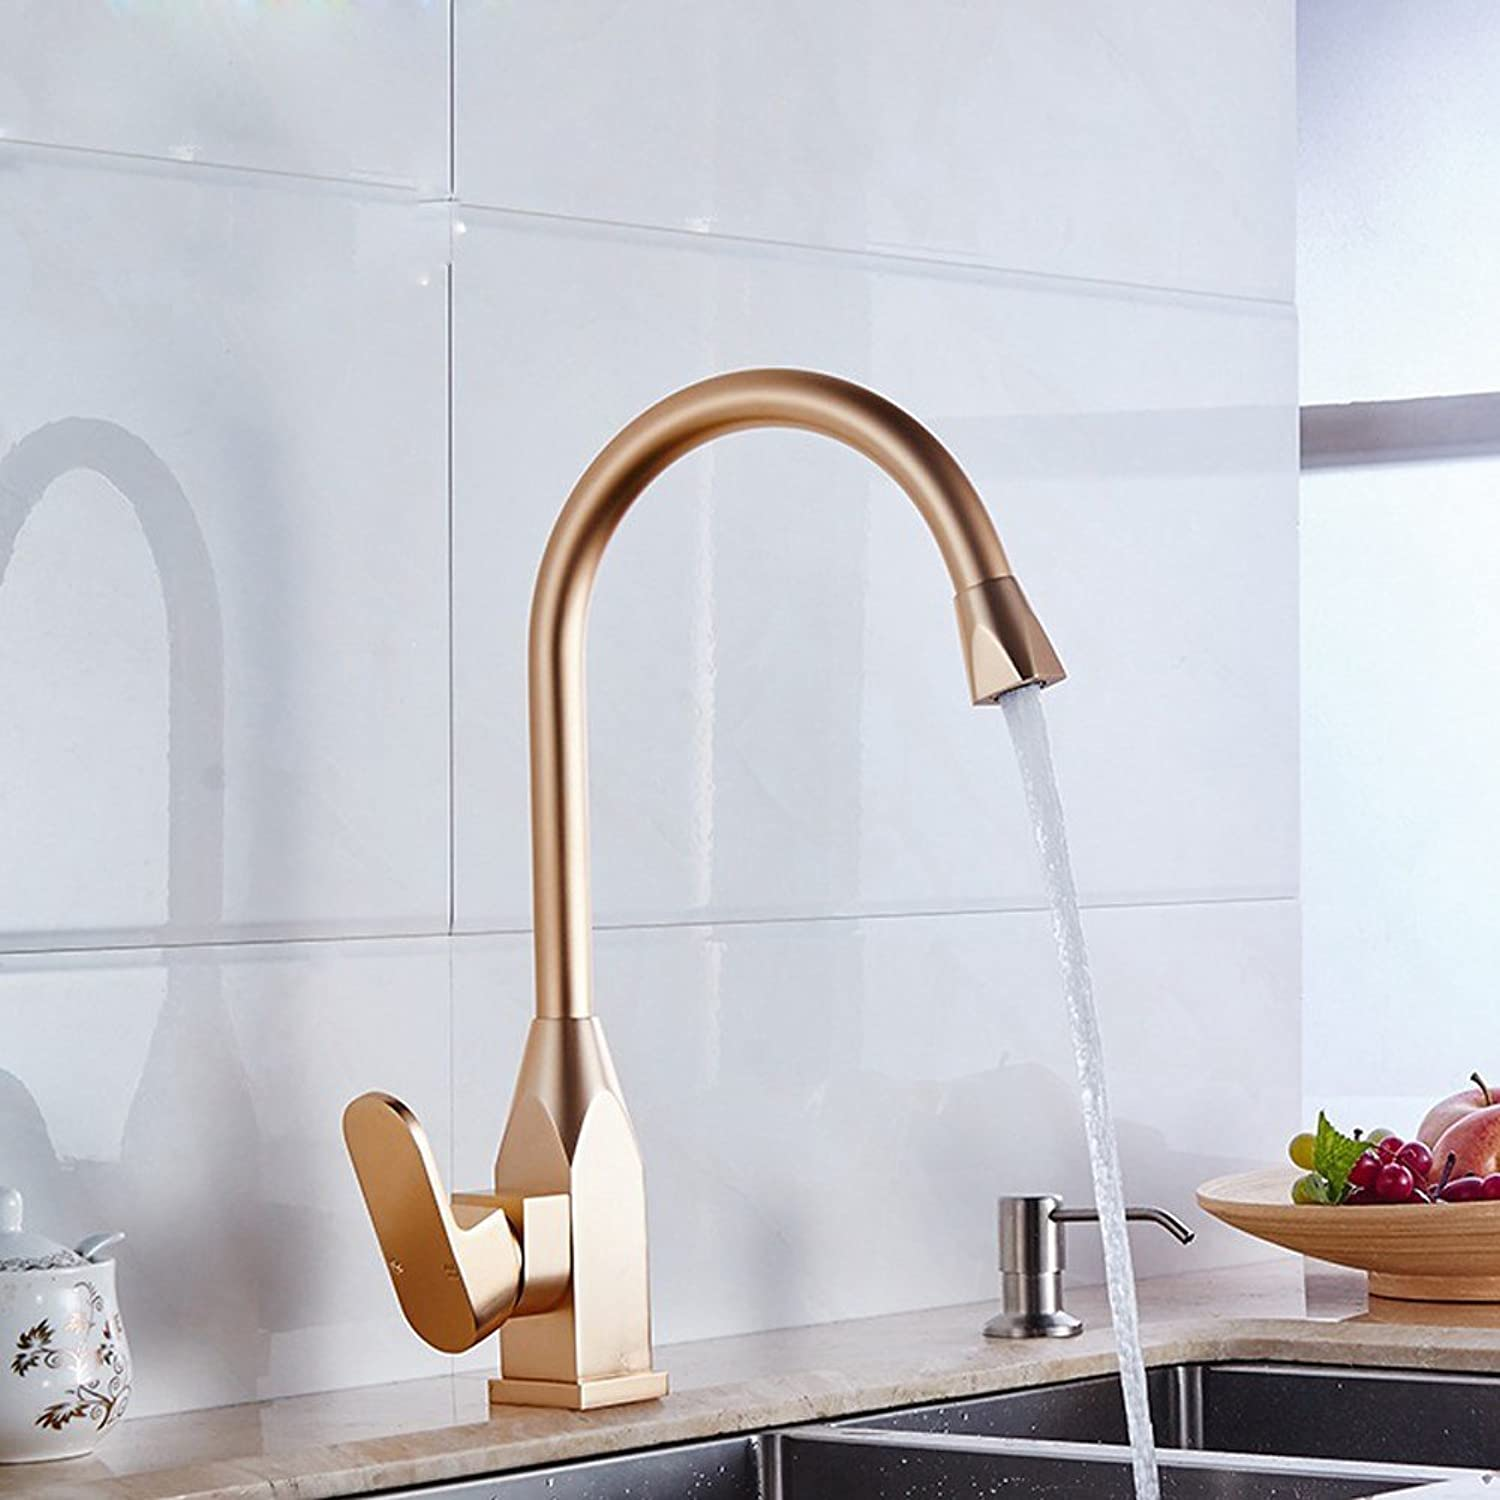 MDRW-Special Faucet In The Kitchen Space Aluminum Kitchen Faucet Lead-Free Tyrant Kitchen Kitchen Basin Faucet